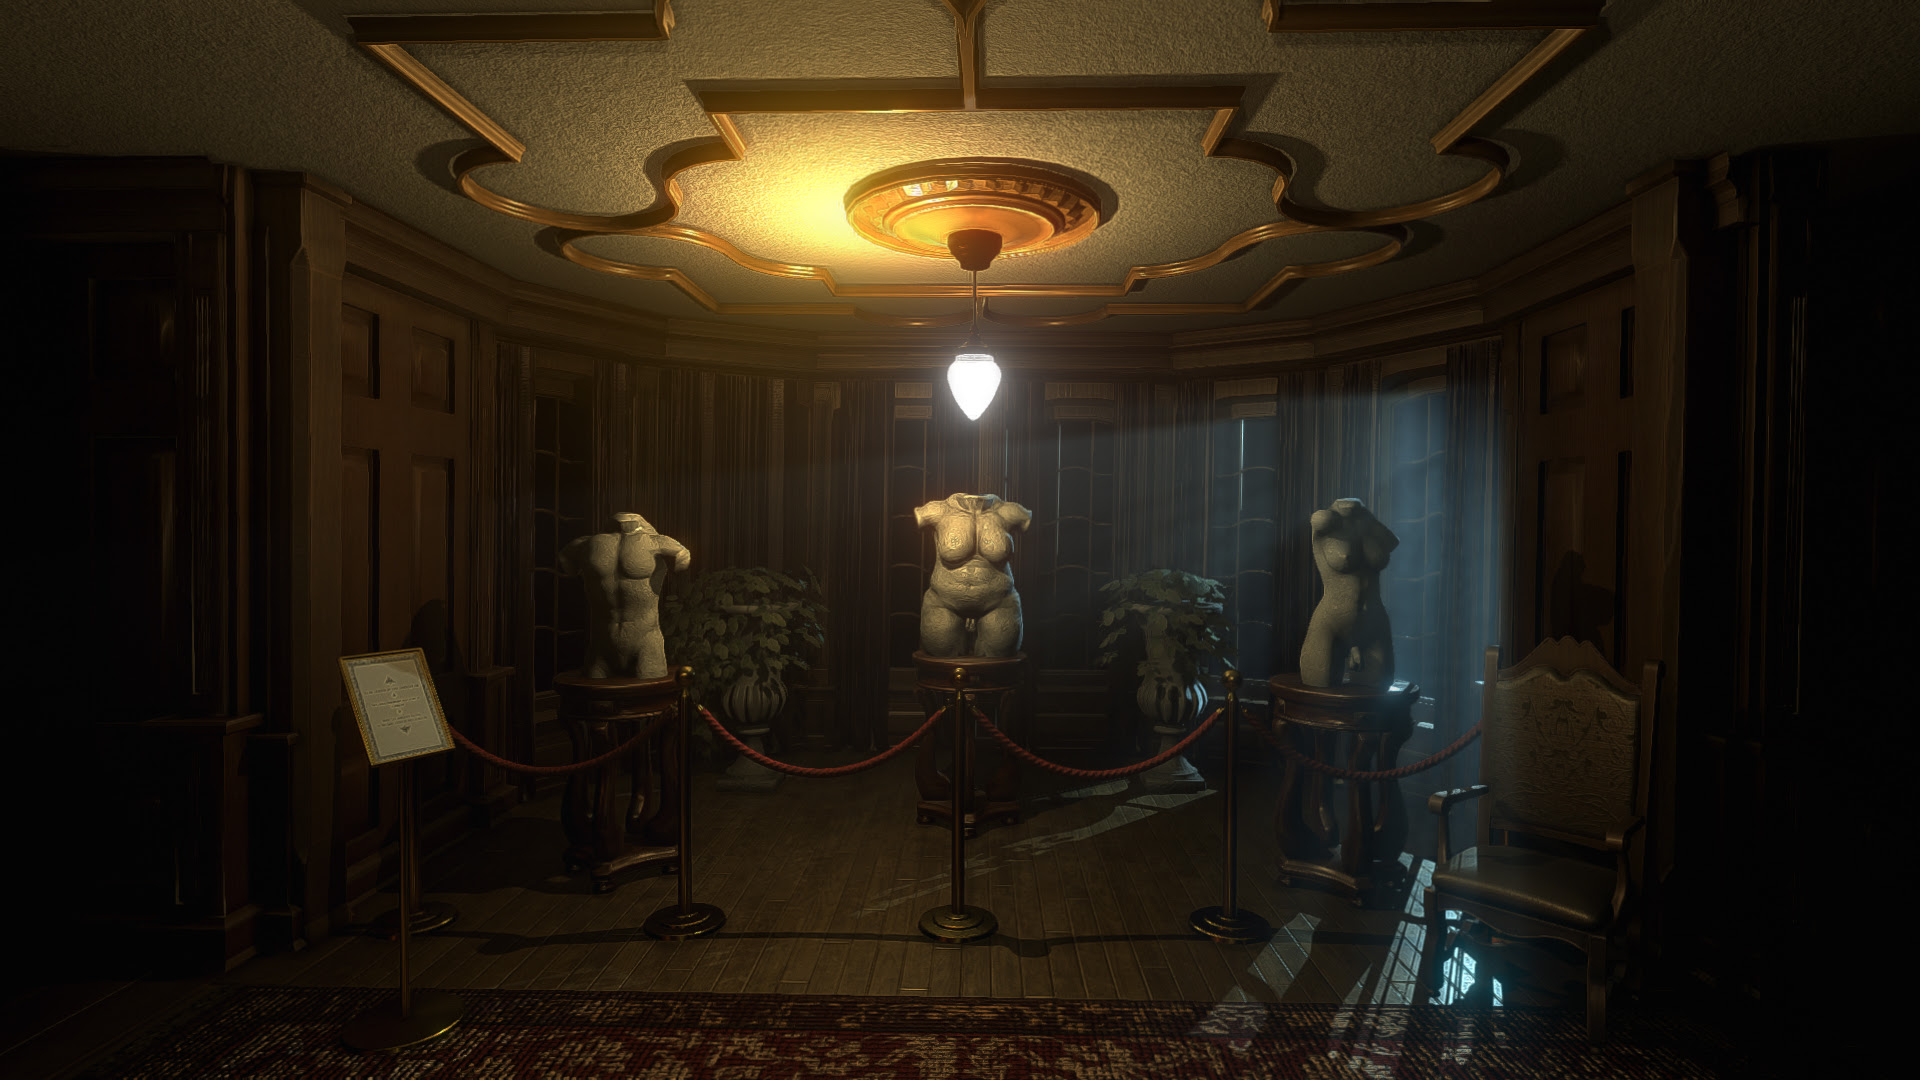 Lust for Darkness is Lovecraftian BDSM horror screenshot